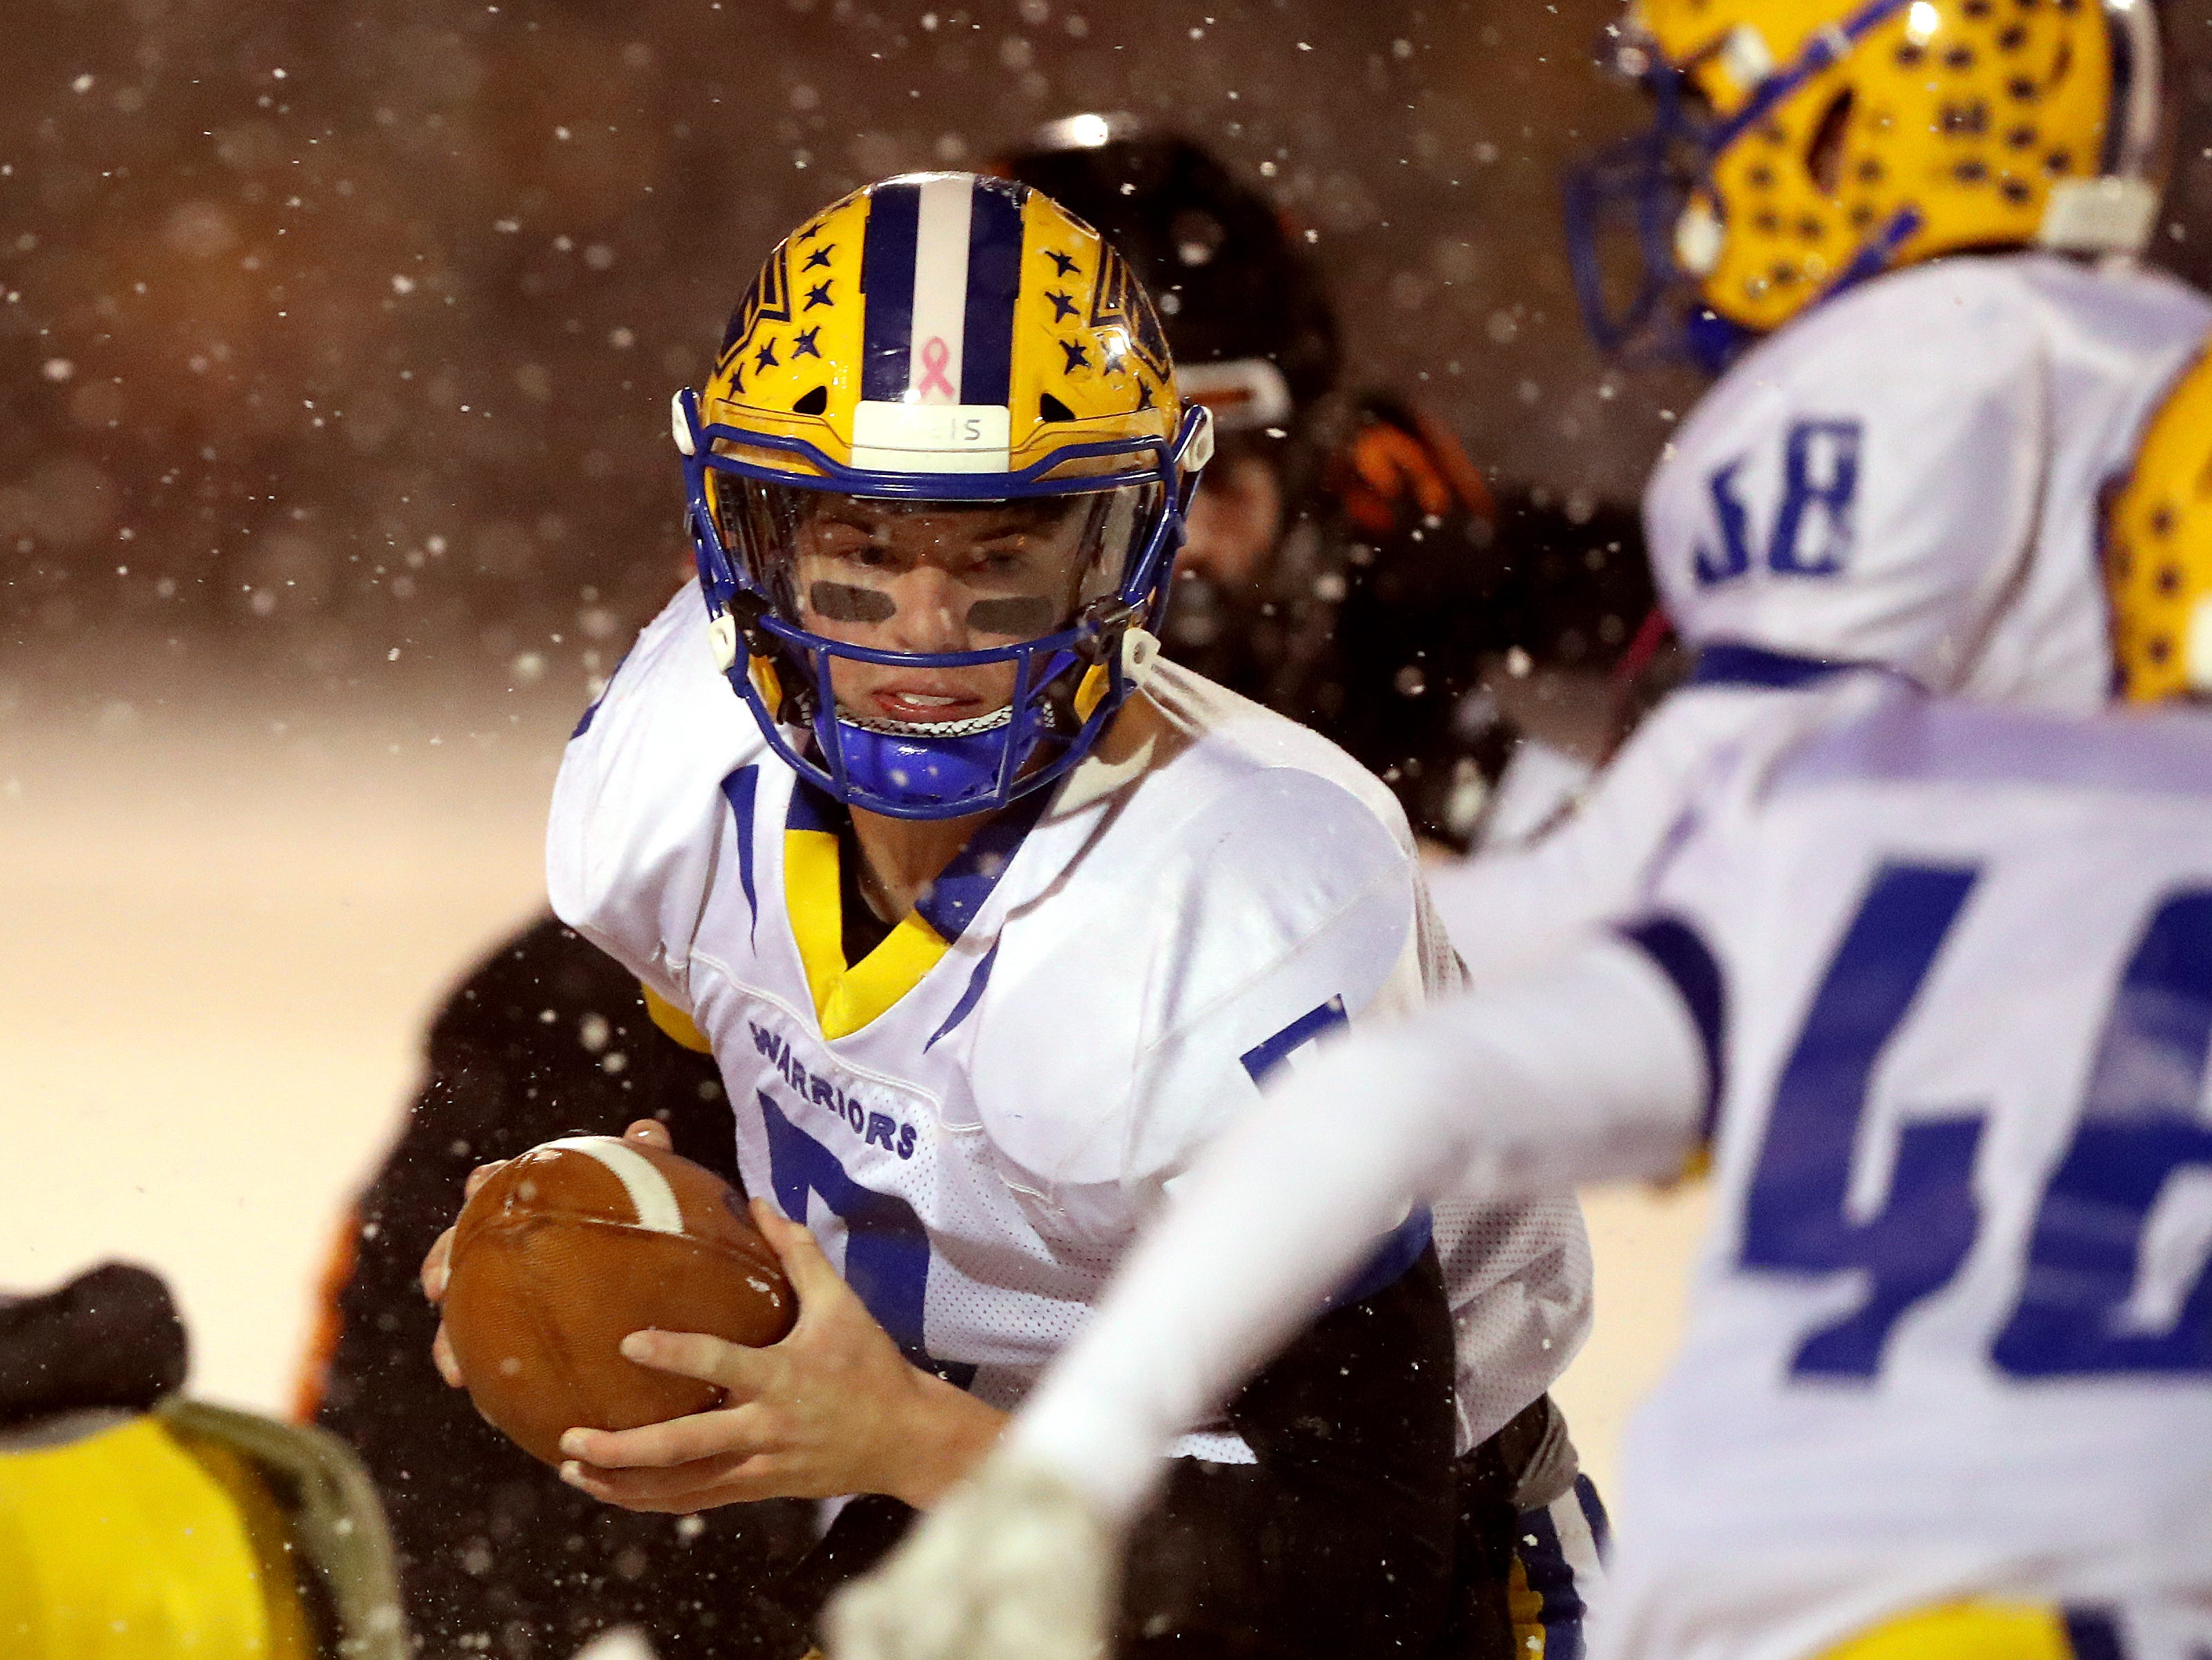 Rice Lake quarterback Peyton Buckley hands off against West De Pere in the Division 3 Level 4  WIAA playoffs Friday, November 9, 2018 at DC Everest in Weston, Wis.